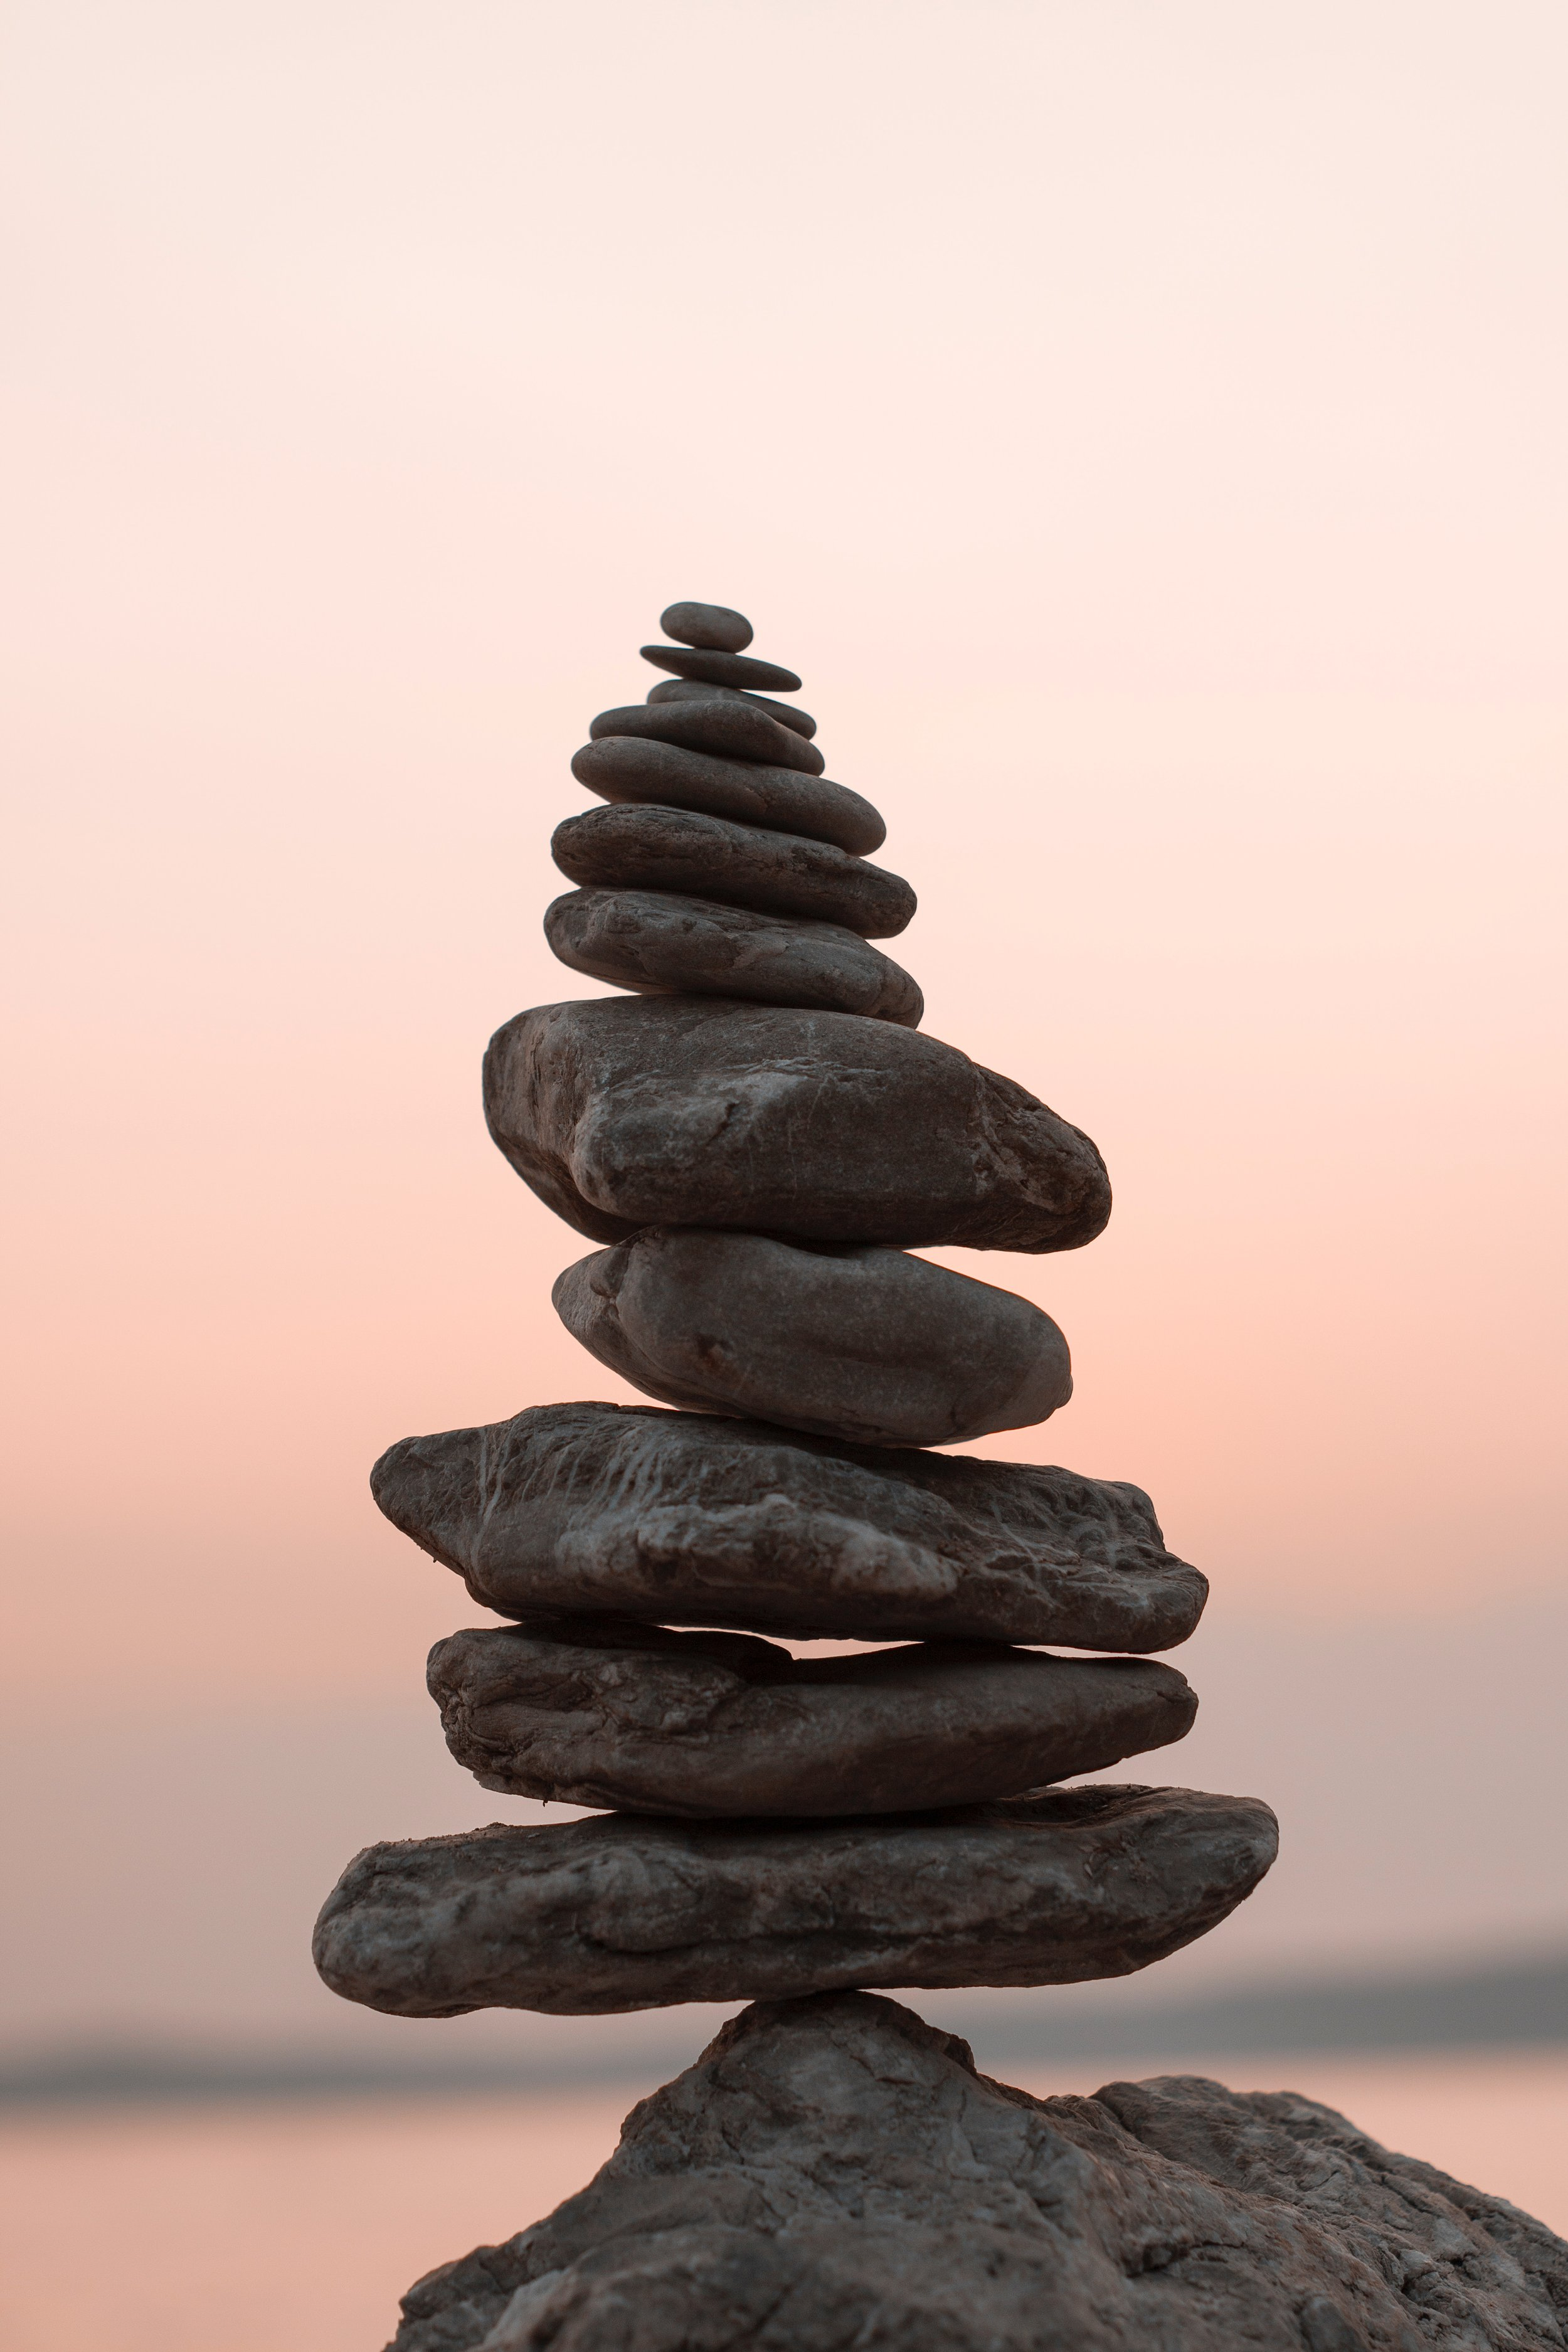 Serious Illness and Caregiver. Meditation Tool. Calming Black Rocks Balancing in a Tower Formation on One Another.